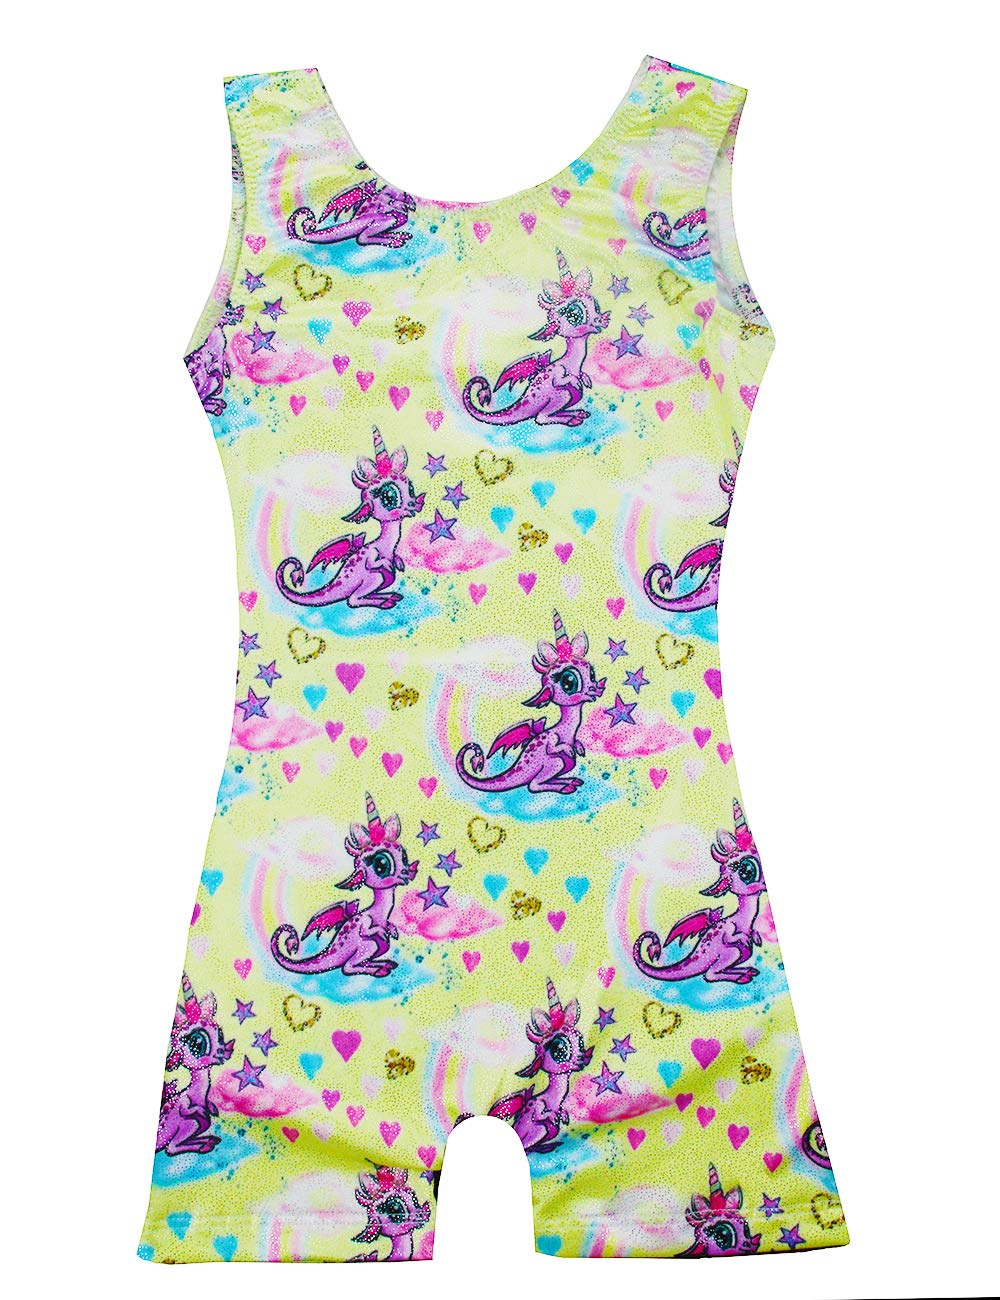 Kids Tank Gymnastics Leotards With Short,Sparkly Athletic Girls' Dance Apparel Unitards Quick-Dry (Purple,110 for 4-5T) by Midout